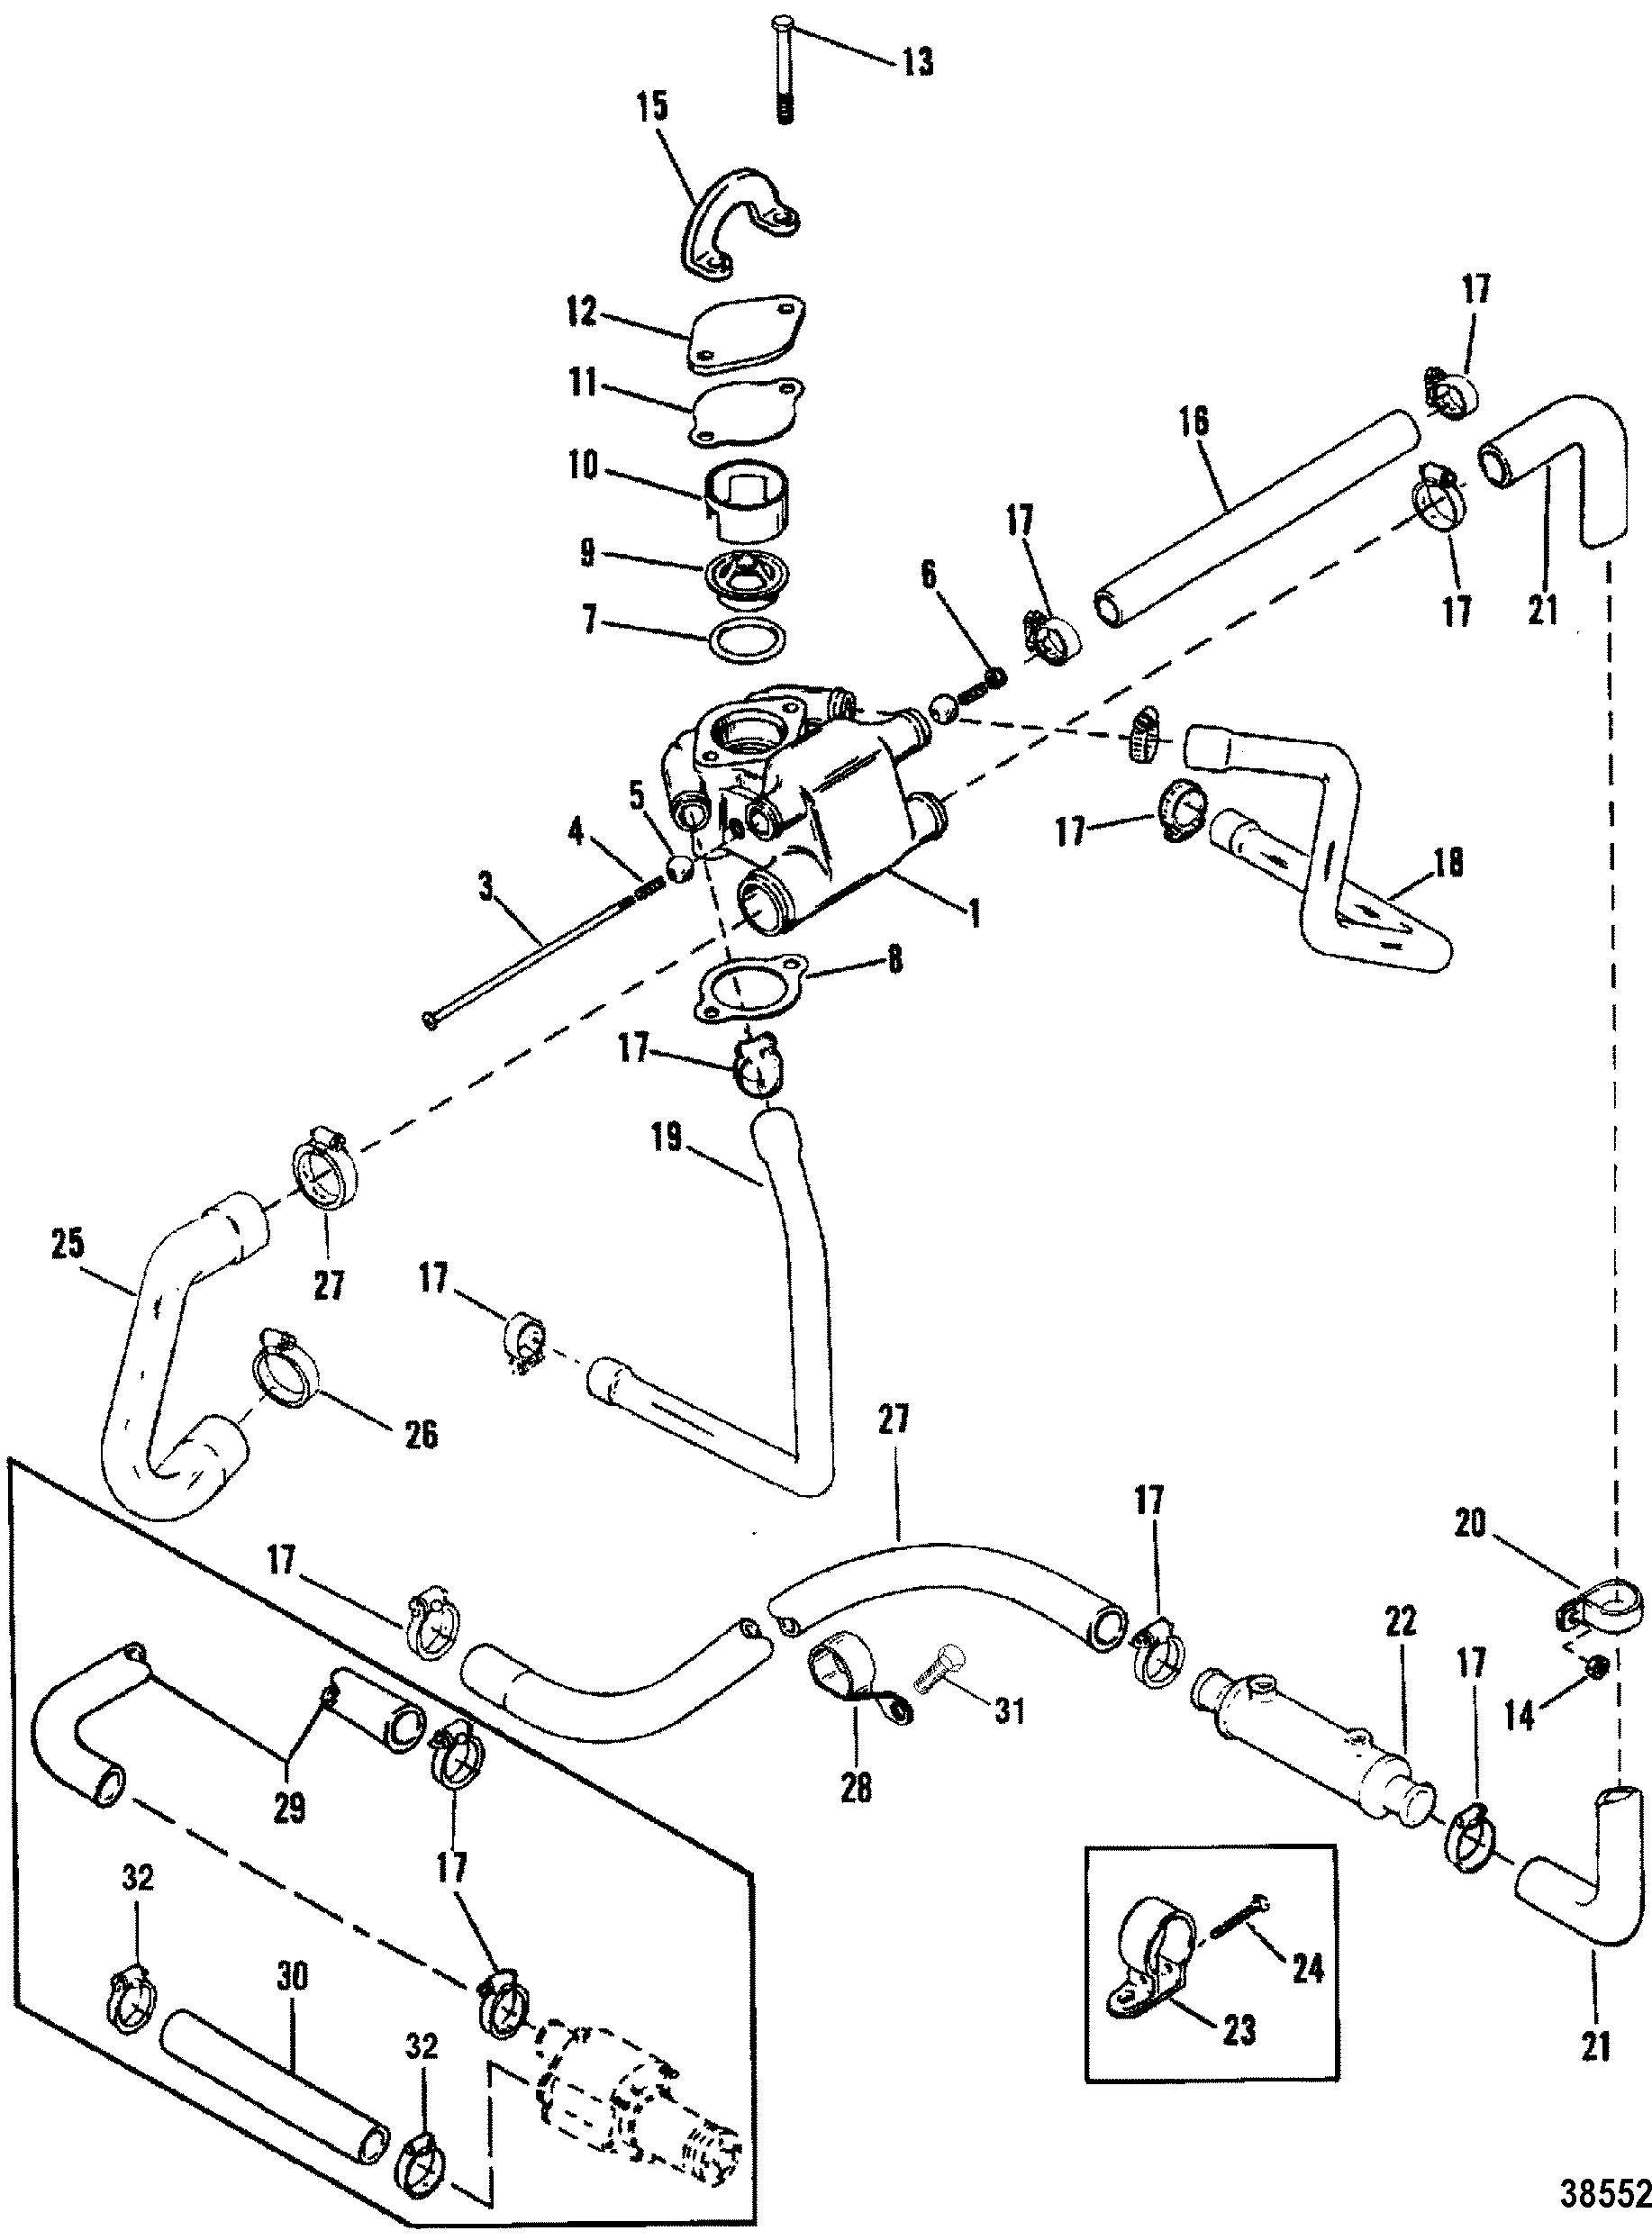 Porsche 996 Wiring Diagram moreover 901 04 further Msd 6al 2 Wiring Diagram together with Show product as well Porsche 996 Ignition Coil Wiring Diagram. on porsche 928 ignition